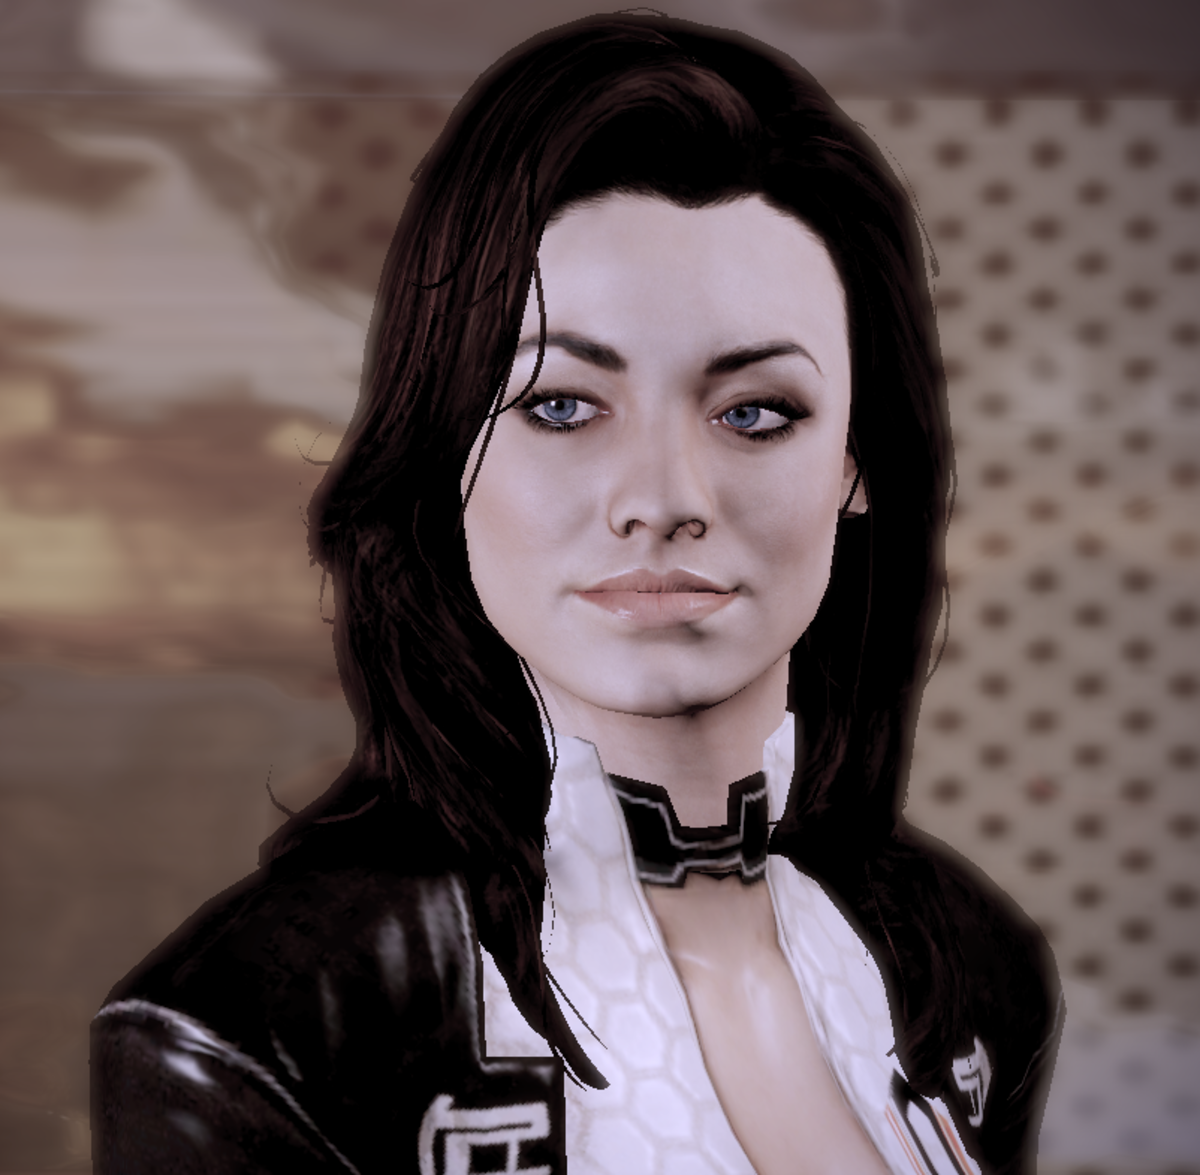 """If you're looking for a """"Mass Effect"""" heartthrob, you've found her."""